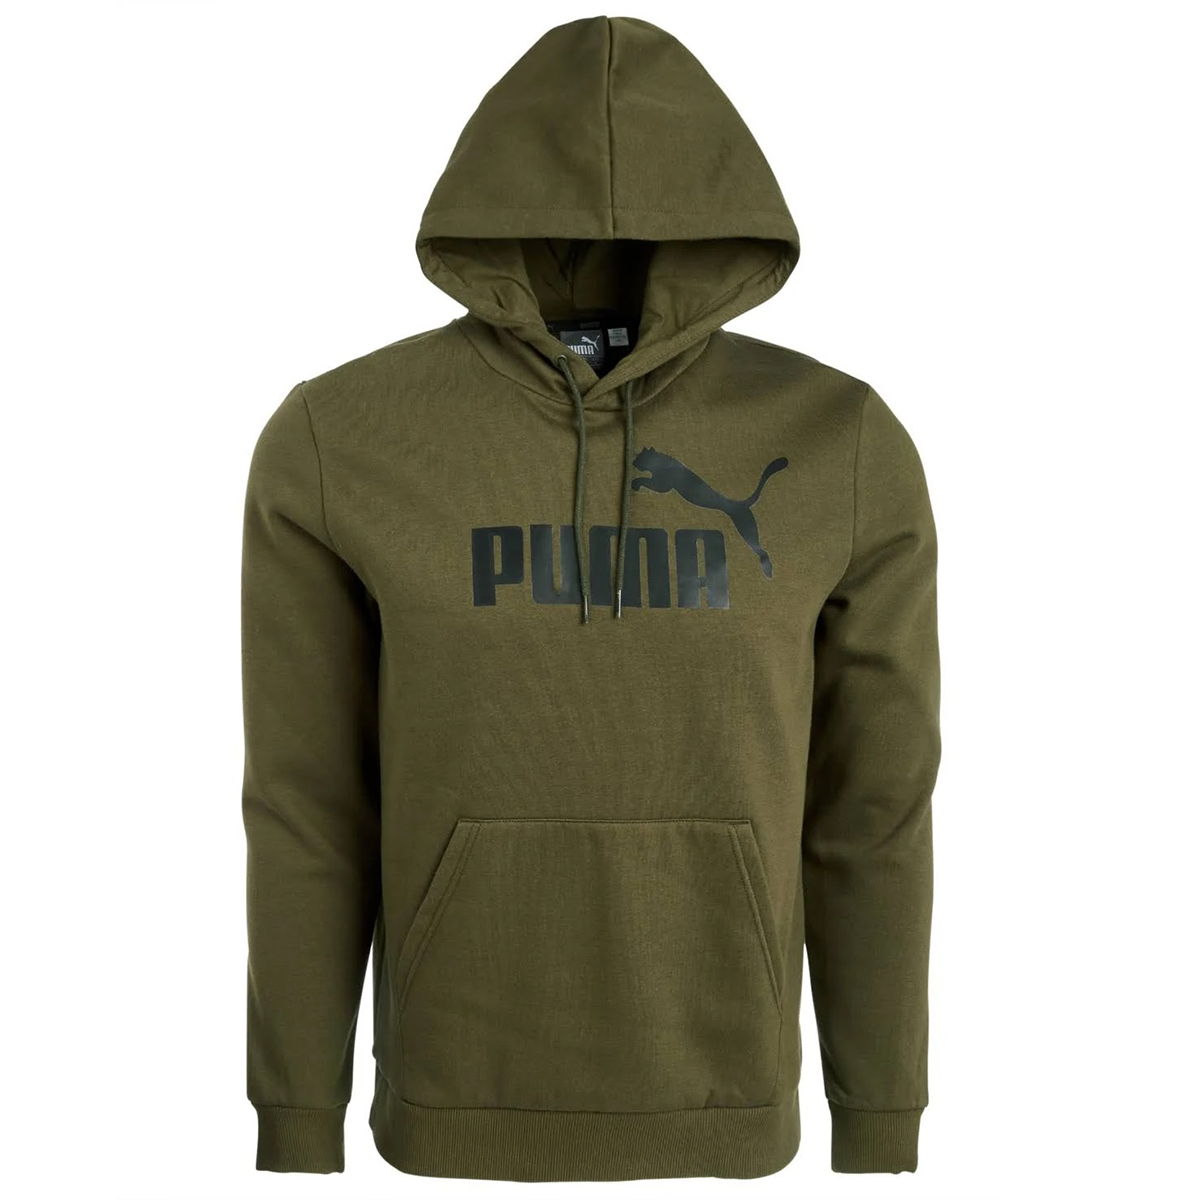 Puma Men's Essential Fleece Hoodie - Black, XXL